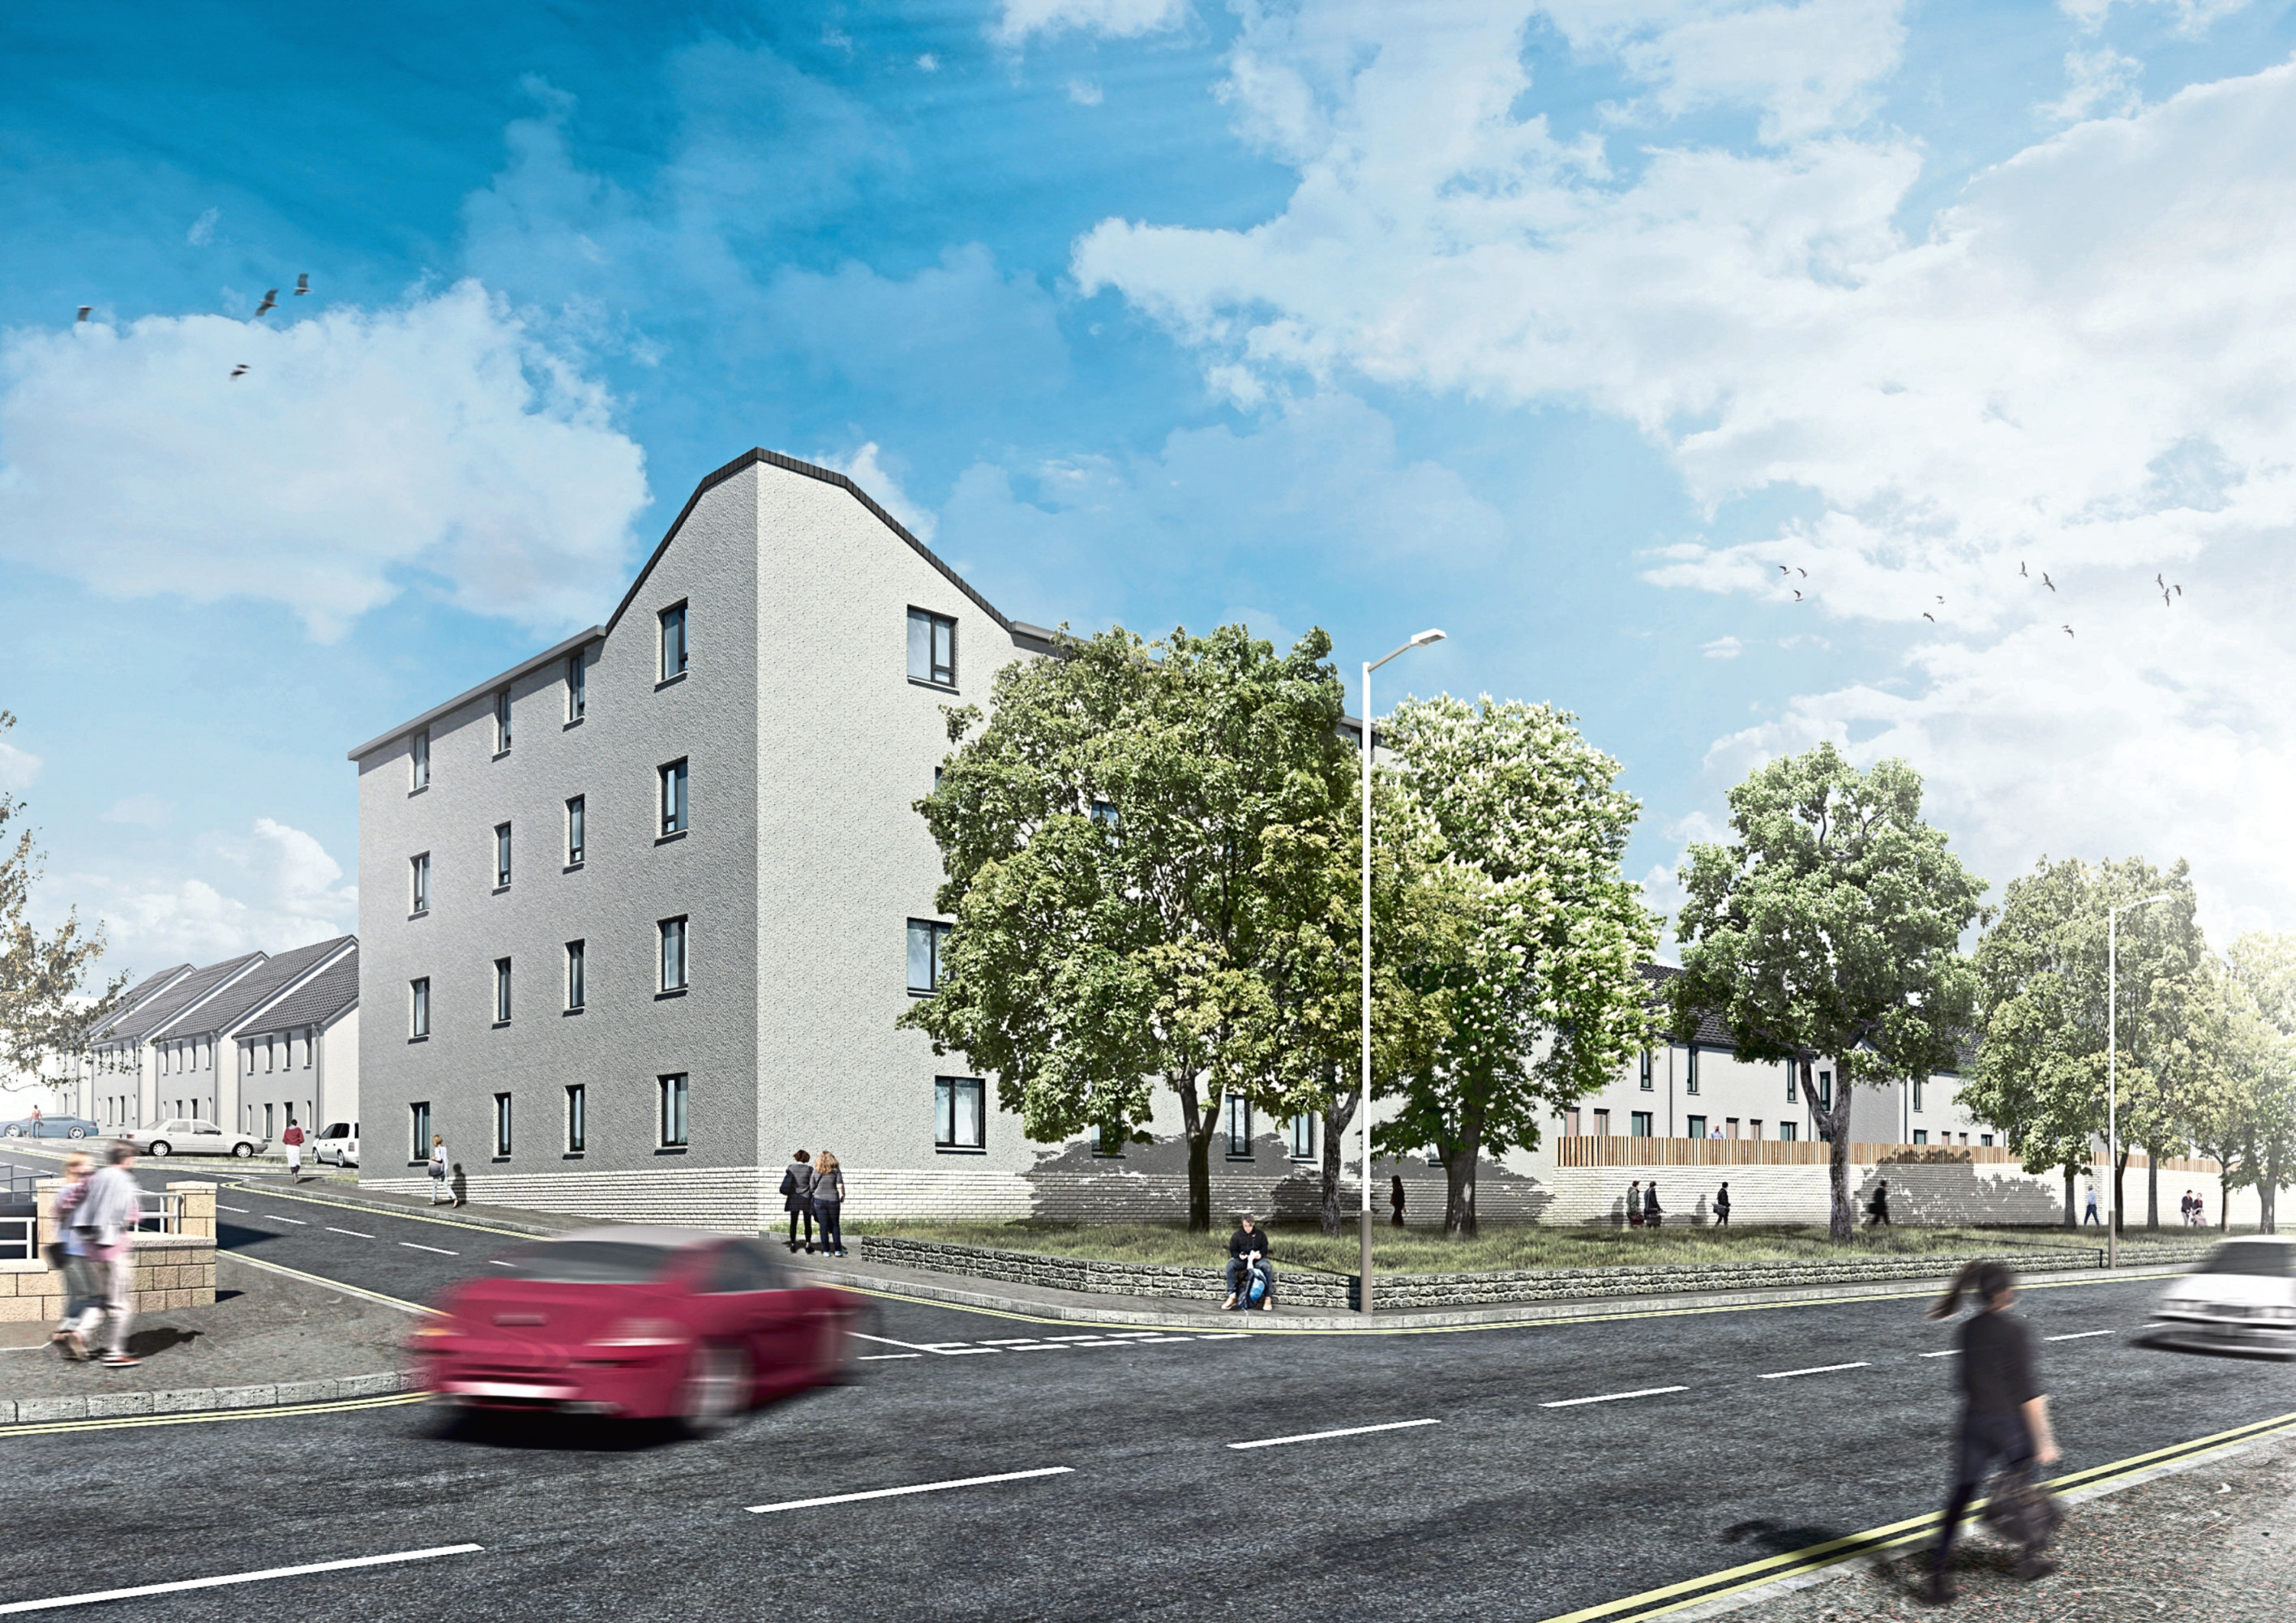 Plans to build nearly 60 new homes within a derelict former Dundee factory have been submitted to the council. The former Maxwelltown Works on Alexander Street are to be transformed into rented and low cost properties.